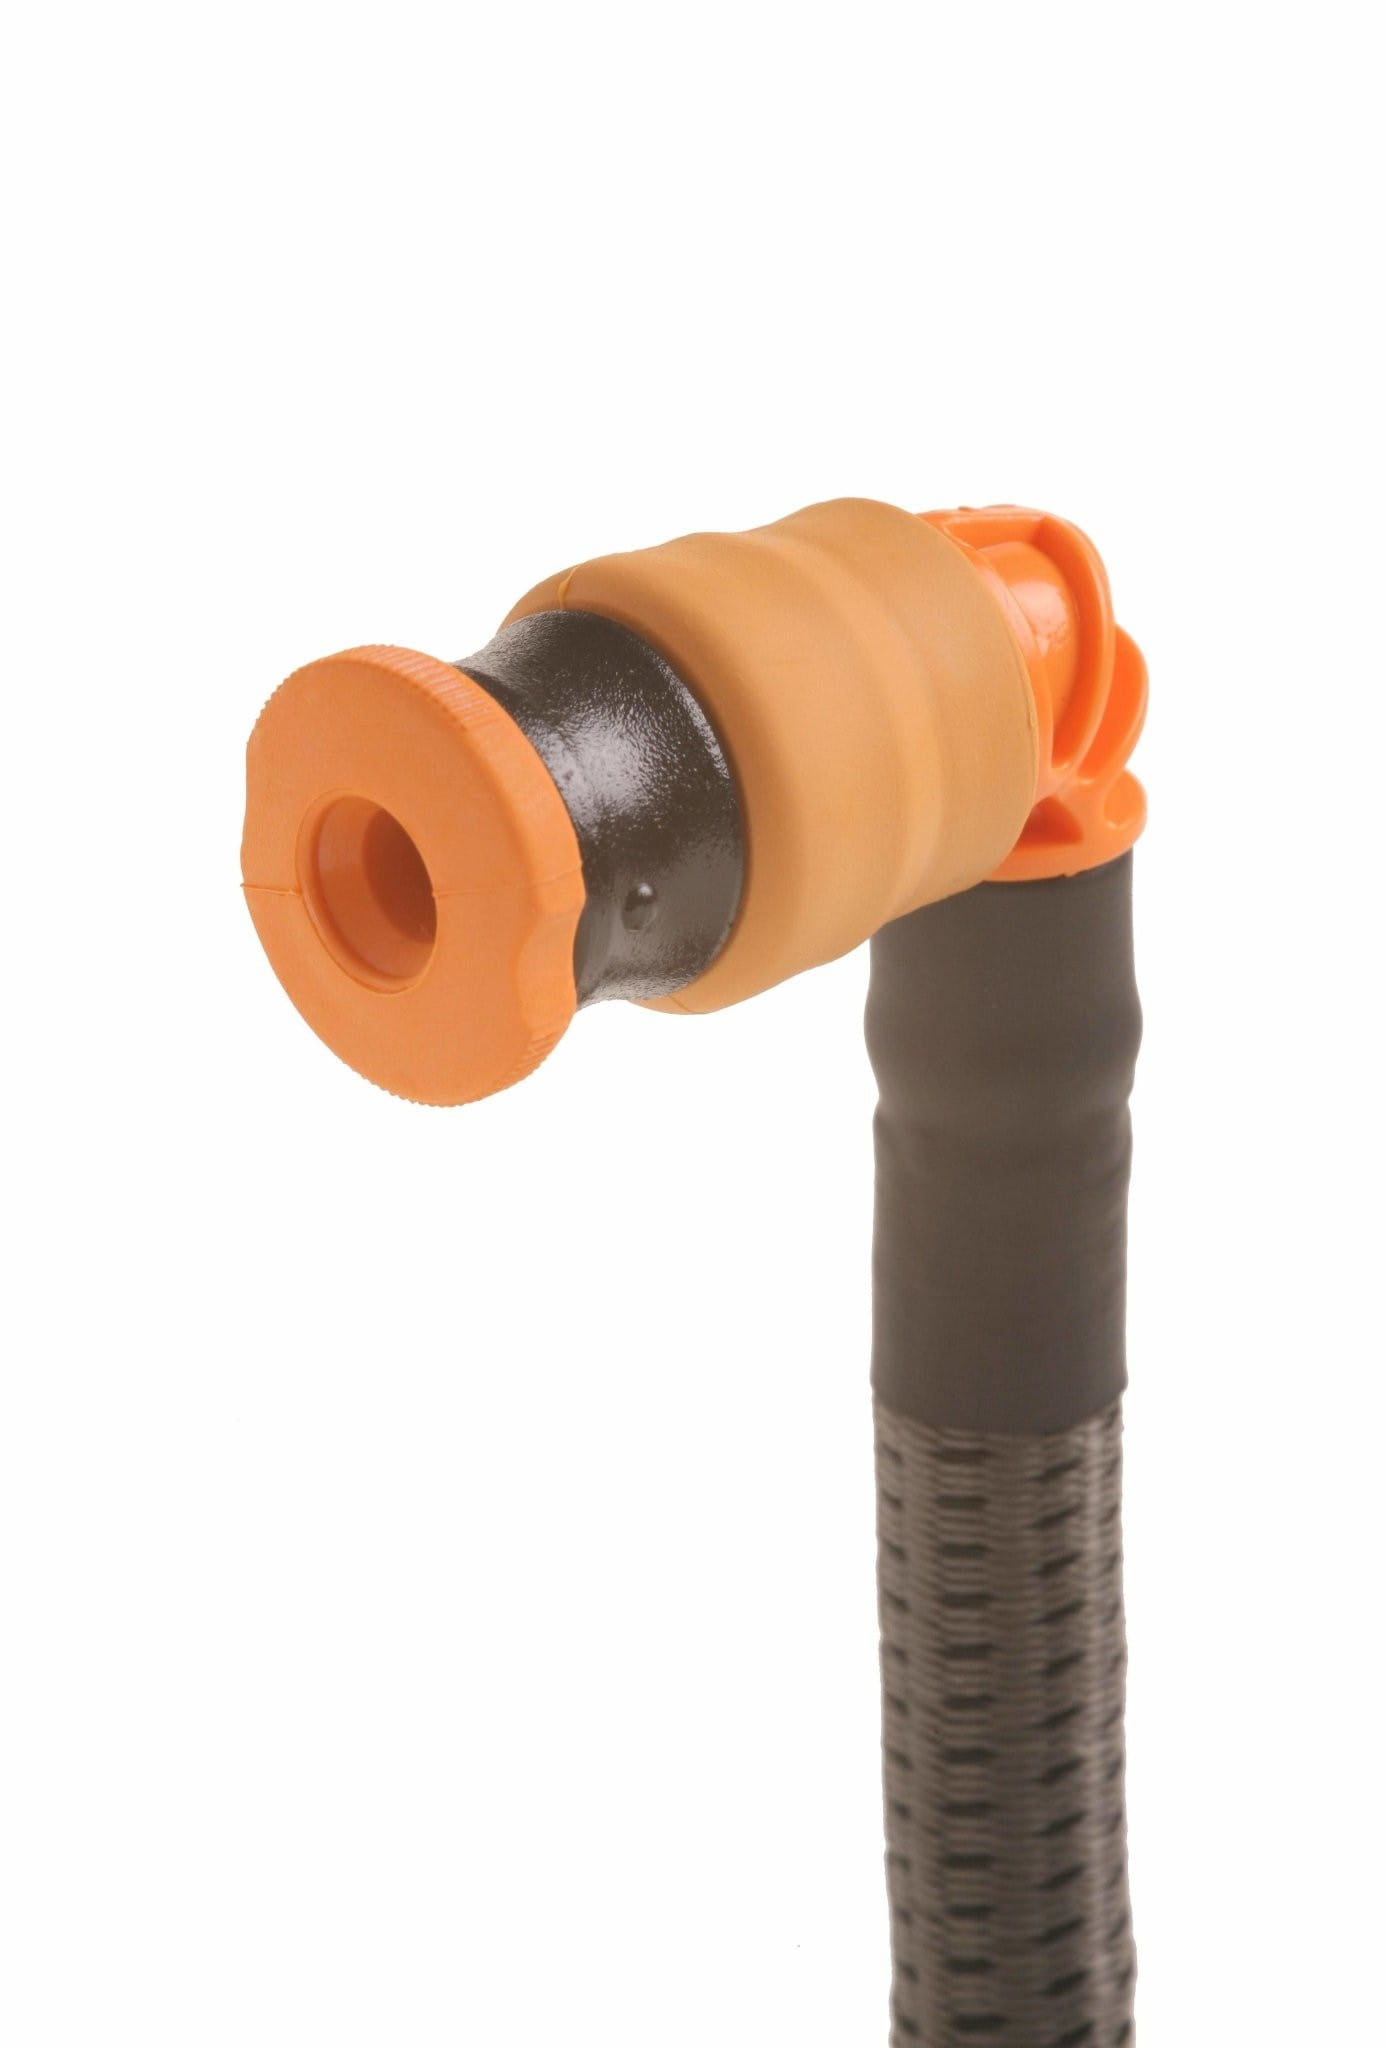 Source Storm - Valve Kit Orange - CHK-SHIELD | Outdoor Army - Tactical Gear Shop